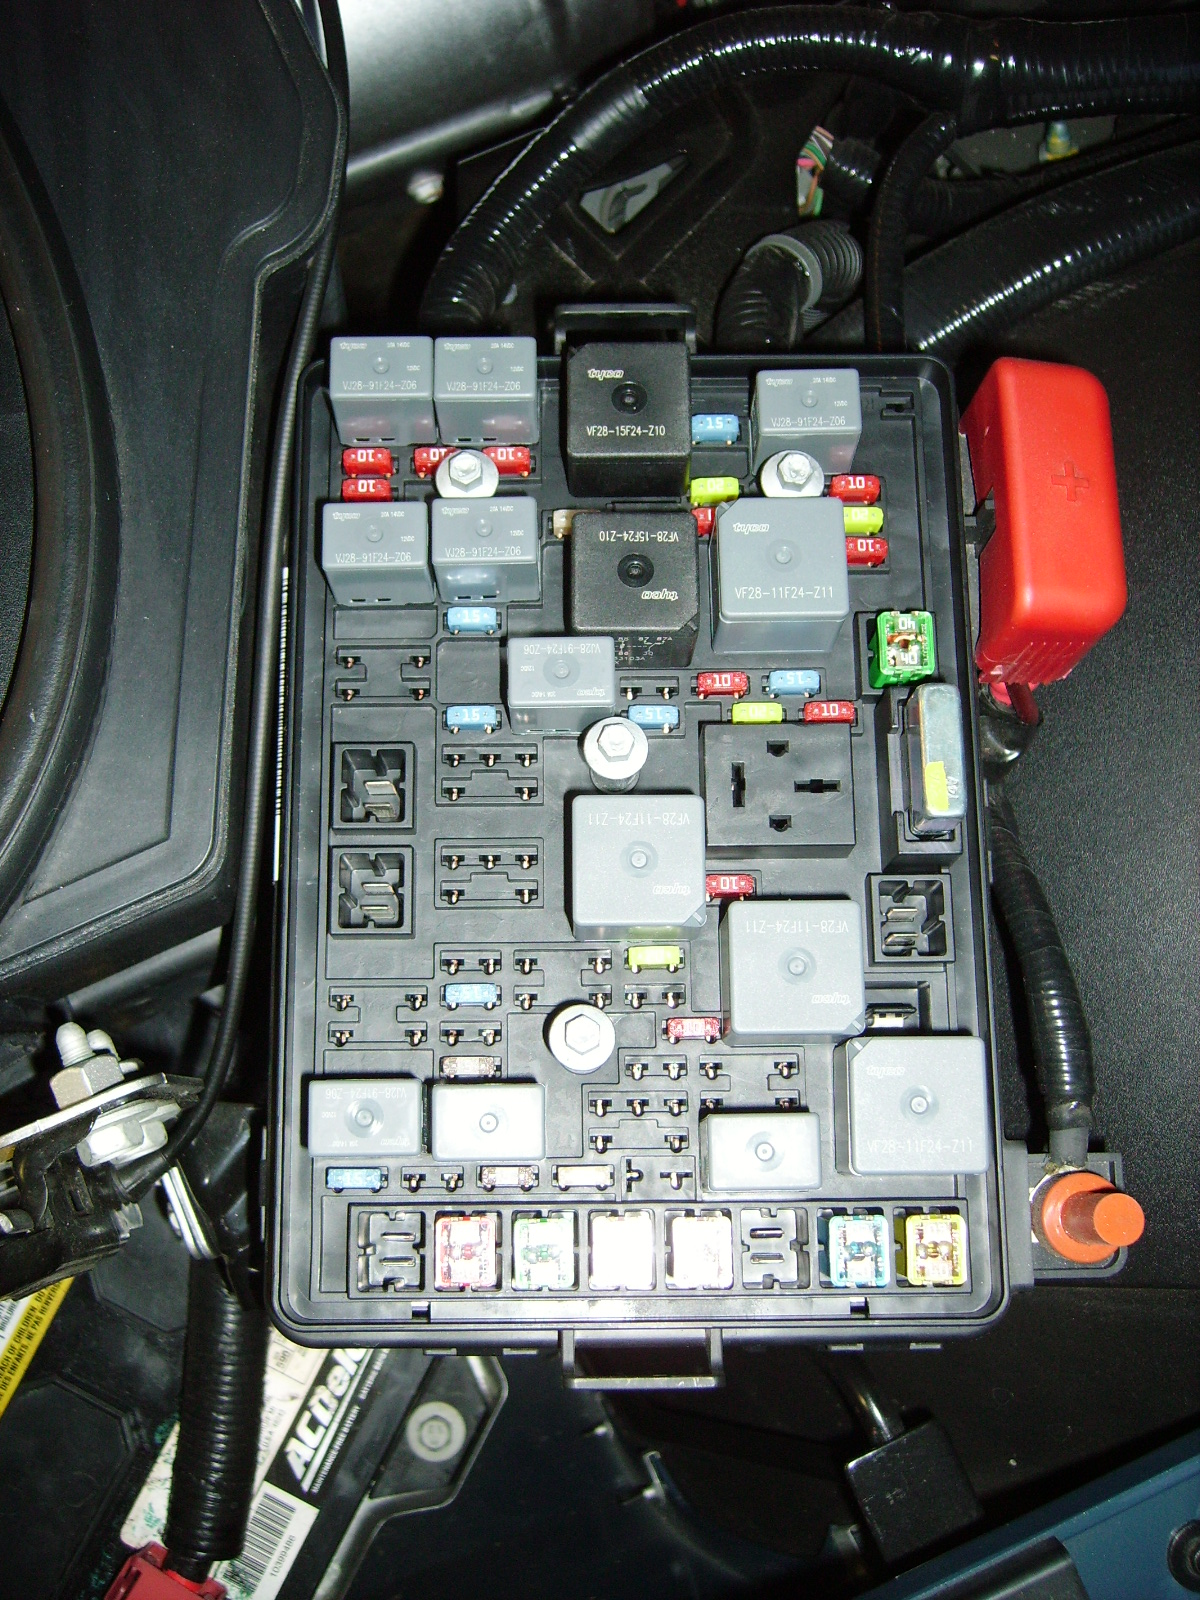 40354d1305120997 reverse light out fuse box under hood 07 saturn ion fuse box 2004 saturn ion spoiler \u2022 wiring diagrams 2005 f350 under hood fuse panel diagram at nearapp.co